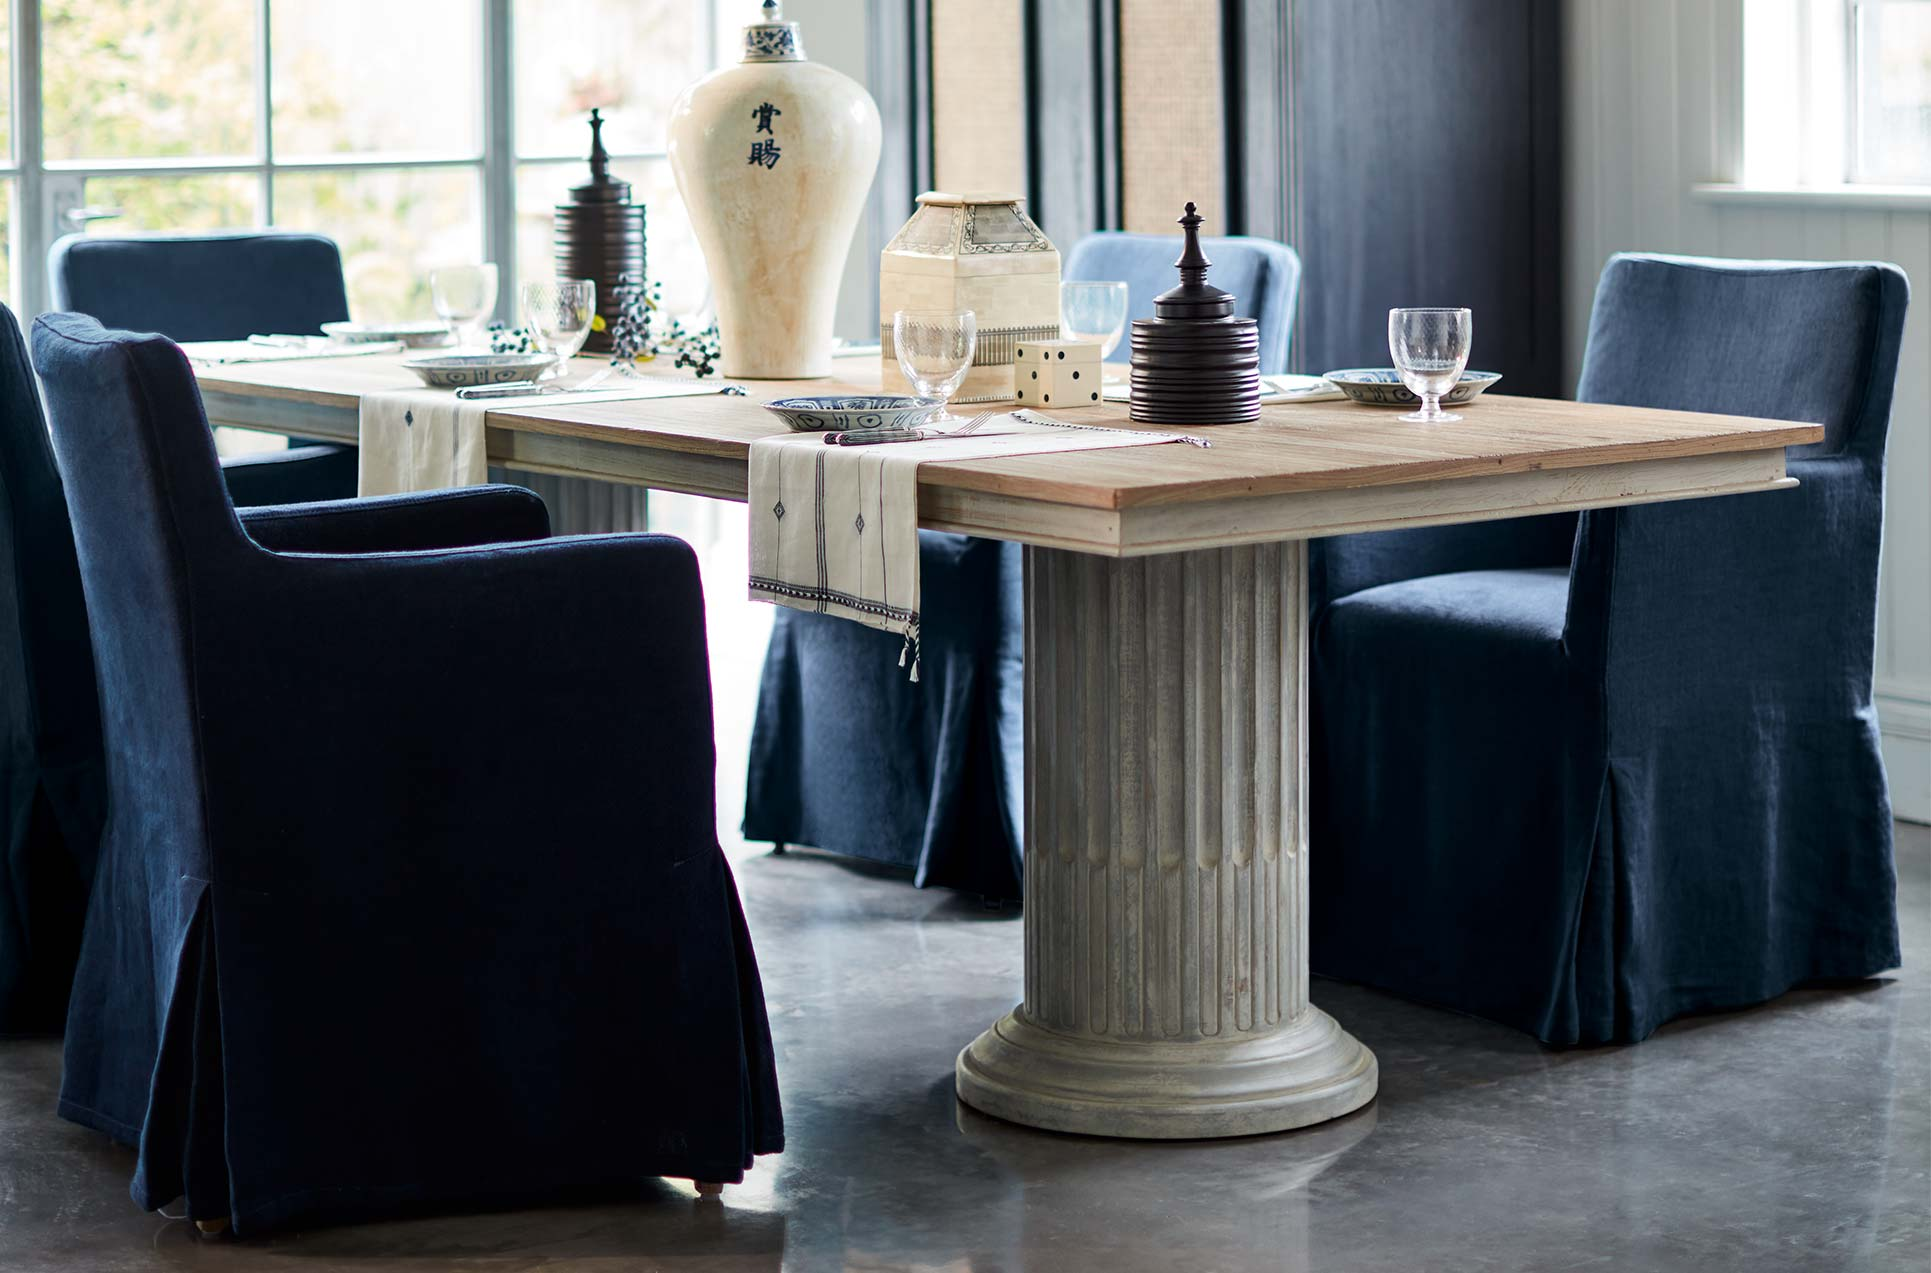 Navy linen loose covered dining chairs around a wooden table with column-style legs